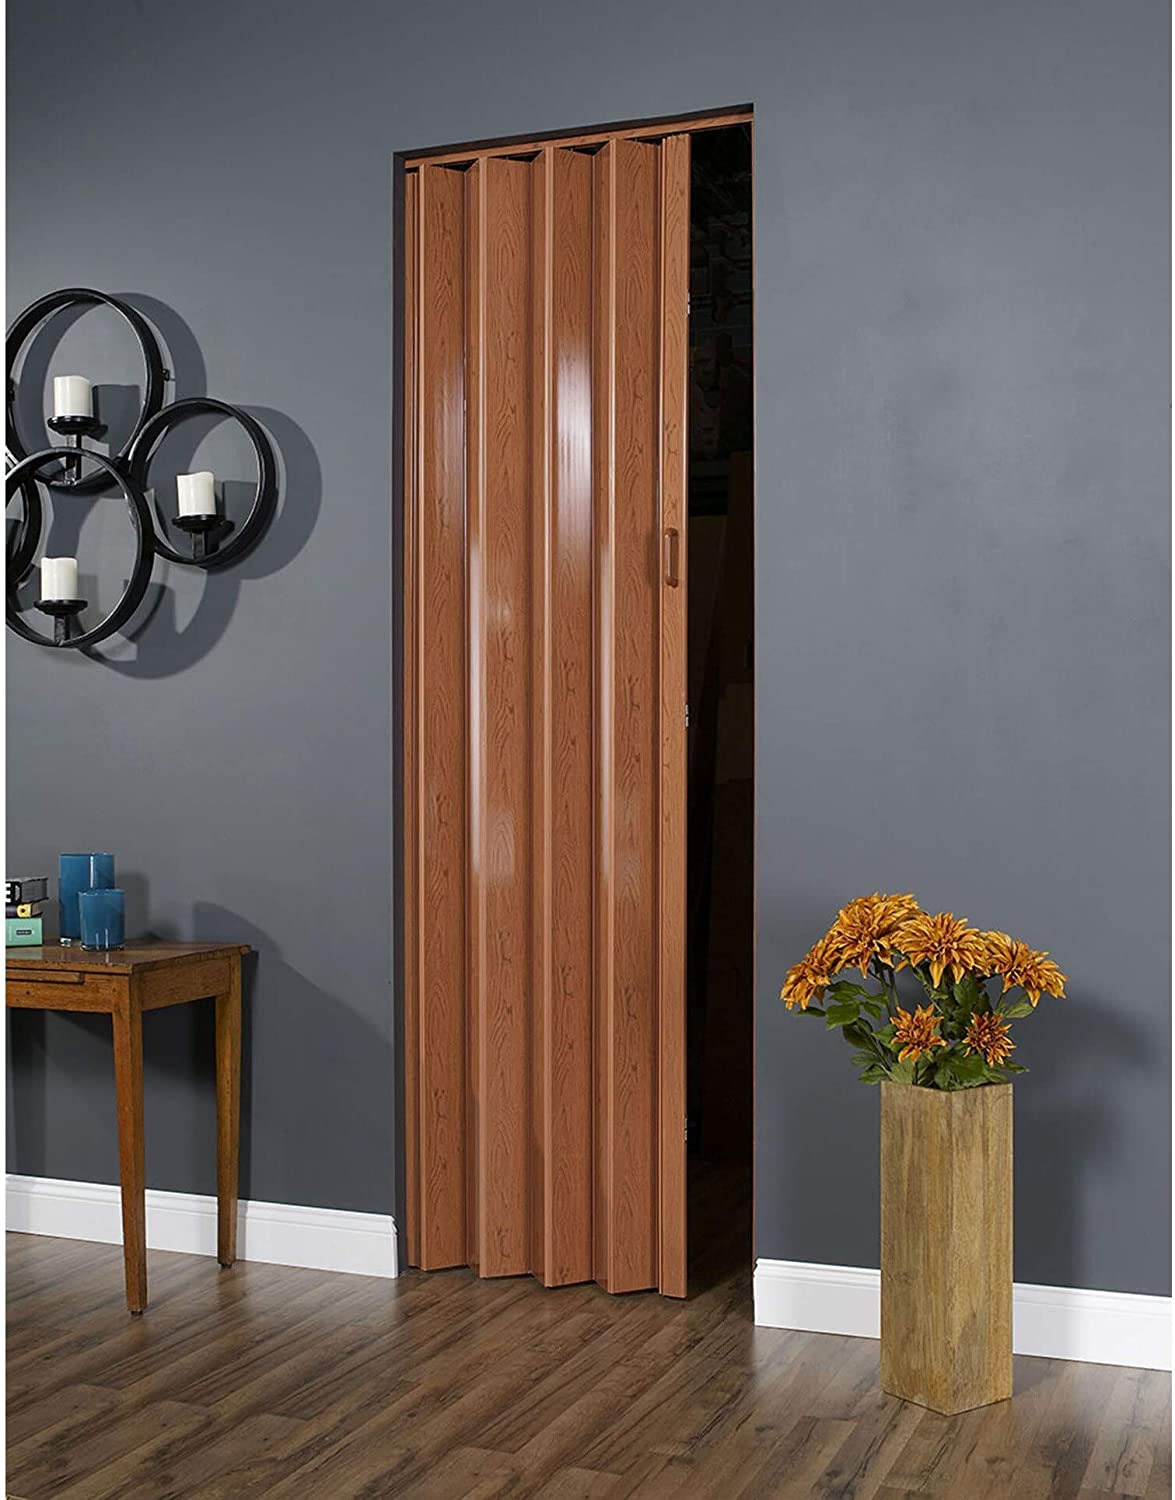 Pecan 36-inch Folding Max 80% OFF Door Includes Hardware National products Plastic